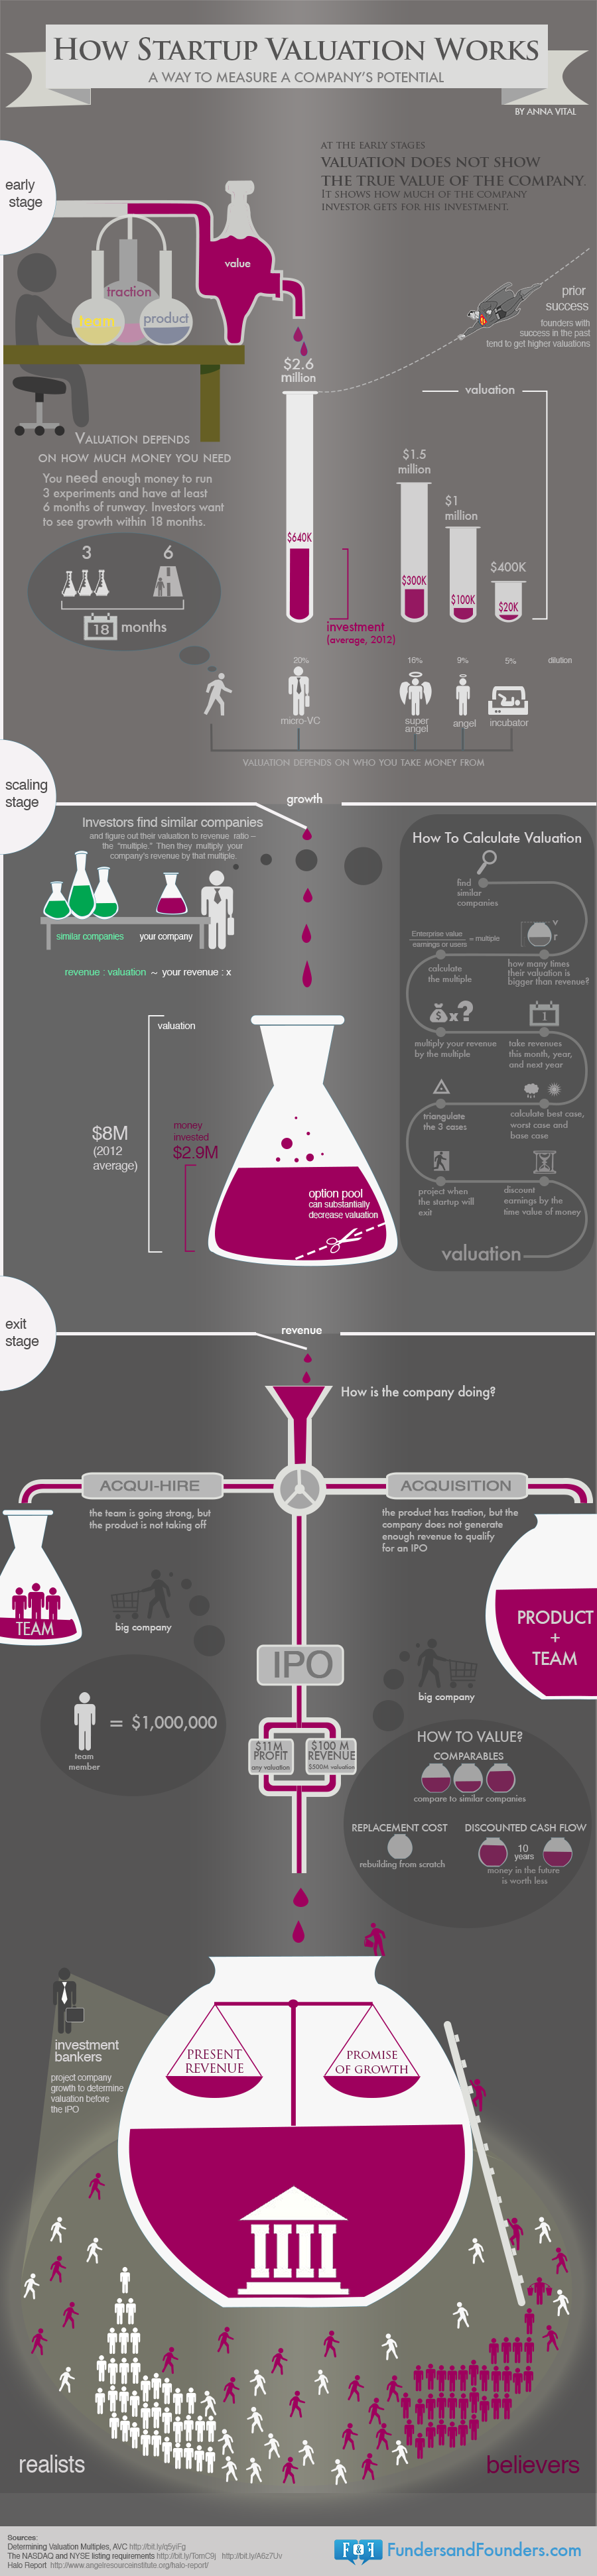 How Startup Valuation Works (infographic): Measuring A Company's Potential